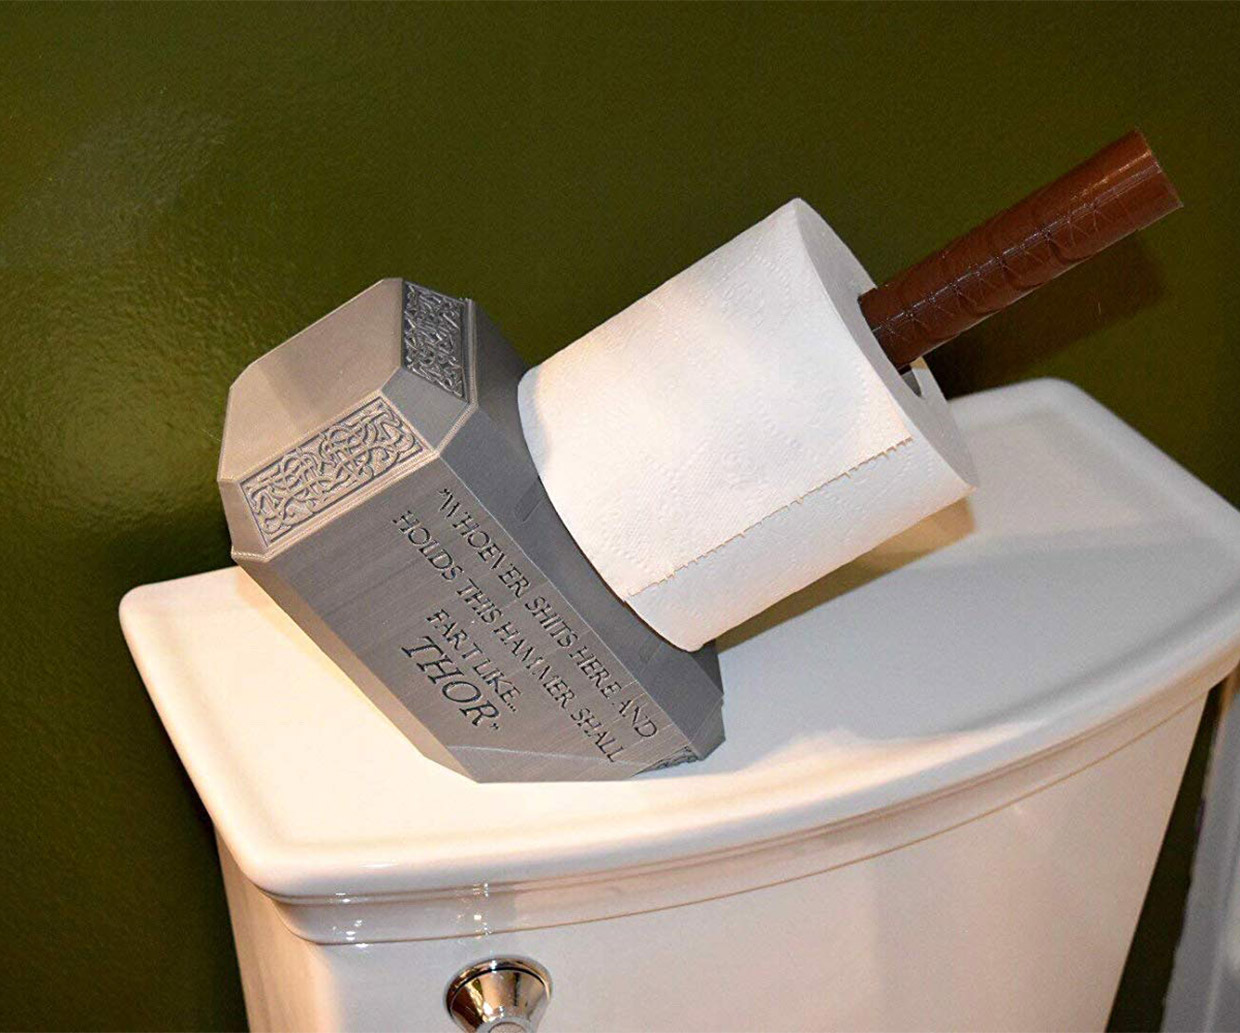 Toilet Paper Holder : Thor mjolnir toilet paper holder: for the god of thunder boomers